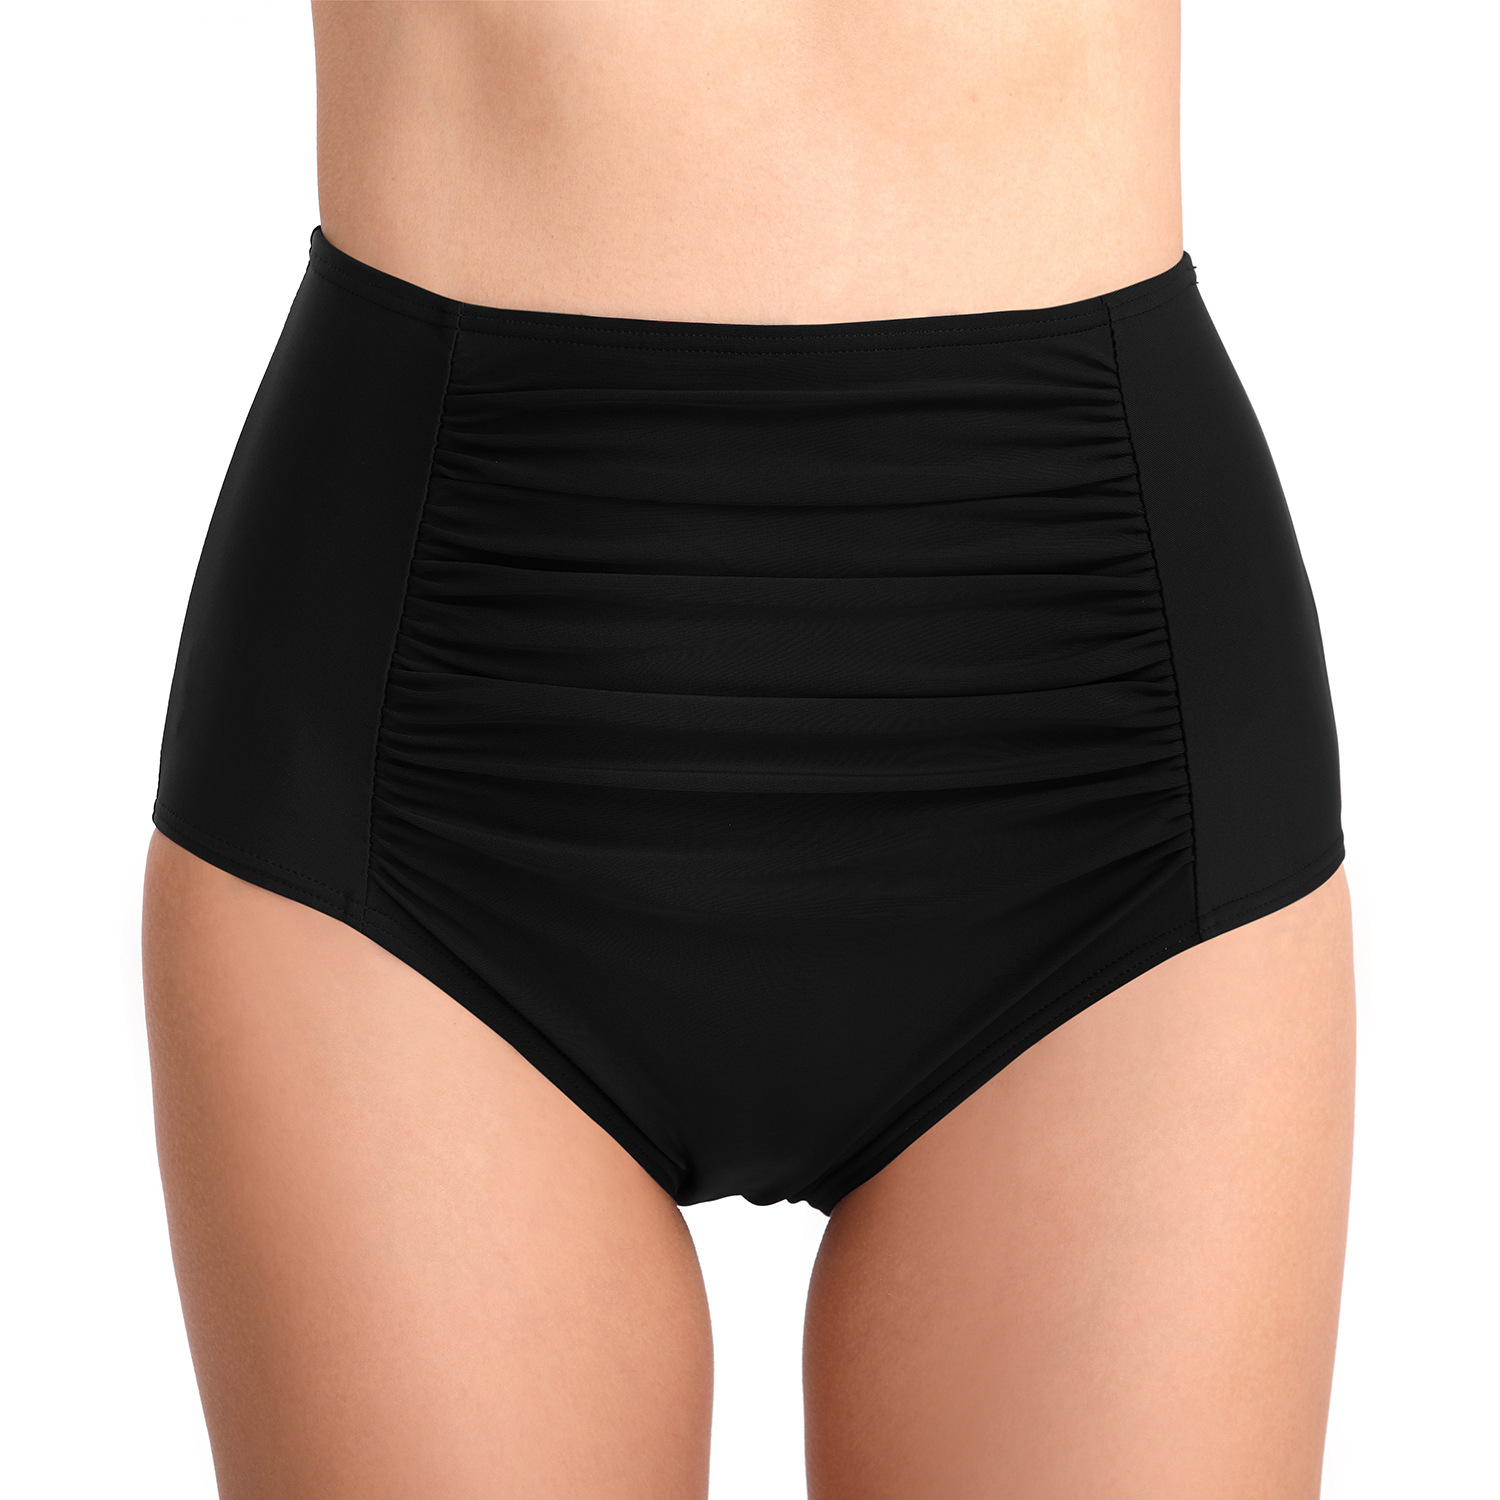 Cross Border 2019 Amazon Hot Selling Swimming Trunks Pleated Tight-Style Swimming Trunks Sheath Belly Holding High-waisted Swim